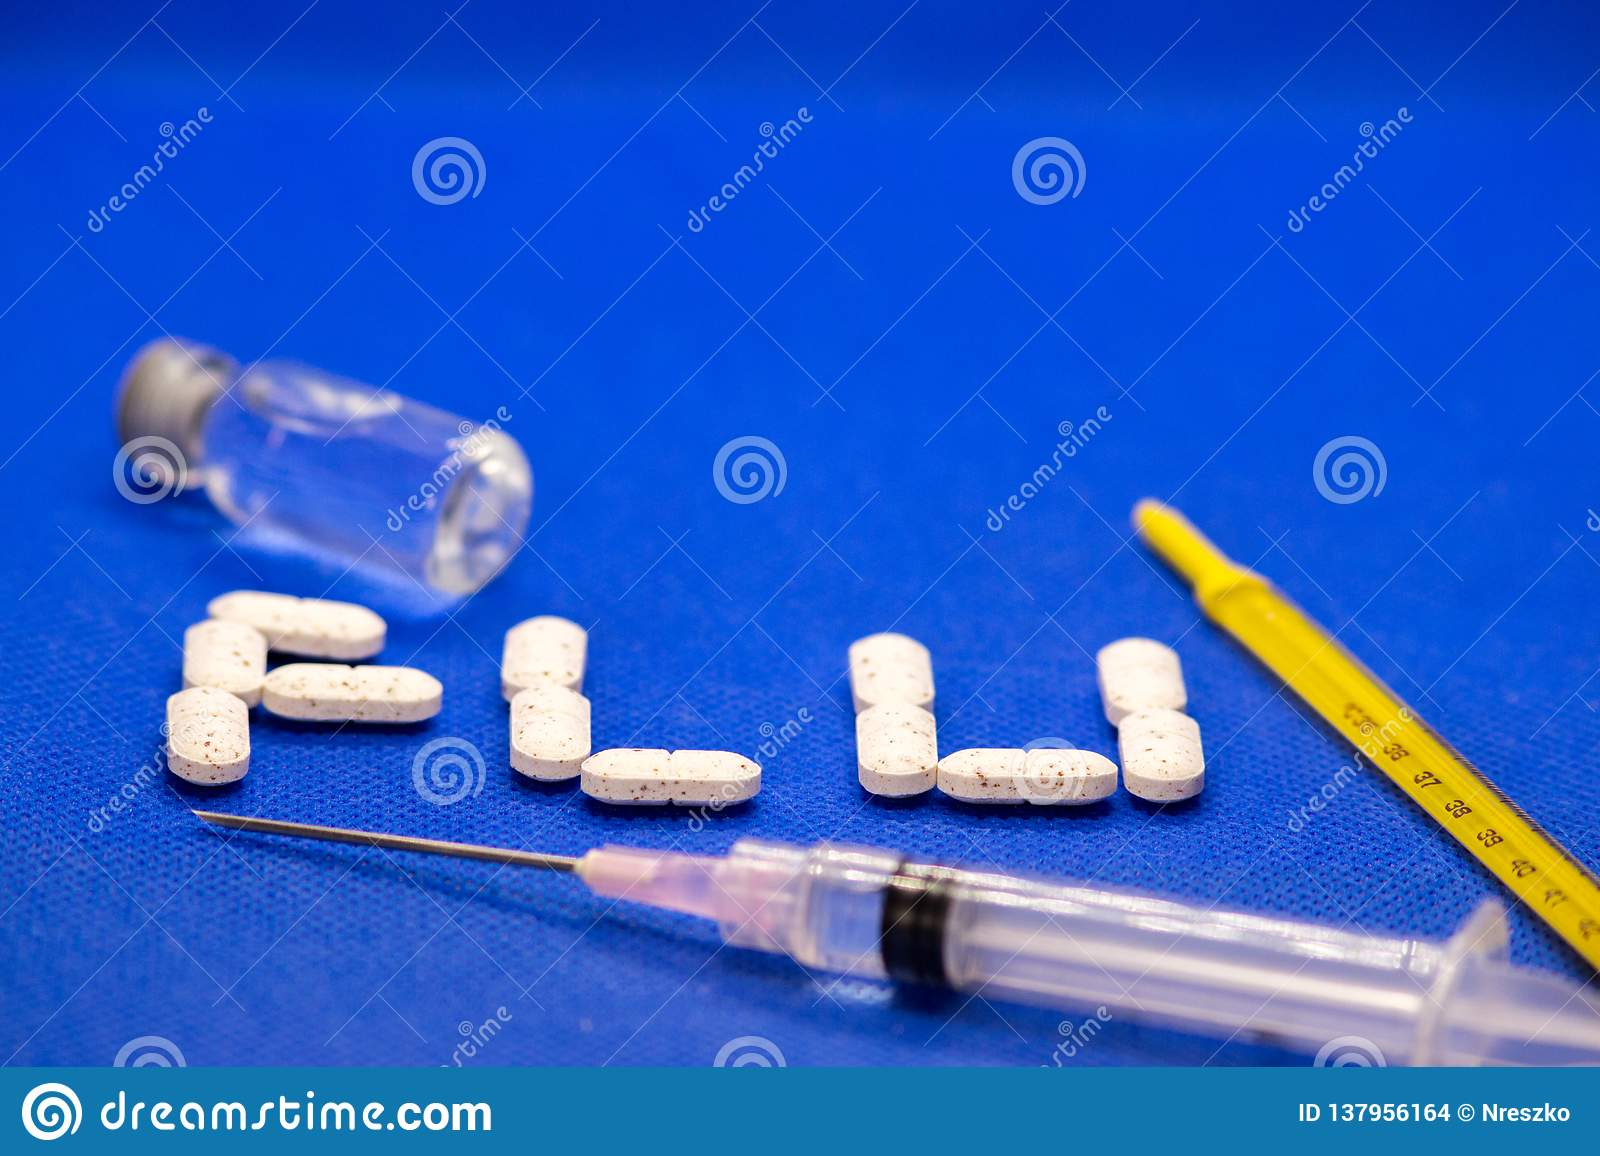 hpv virus homeopathic treatment